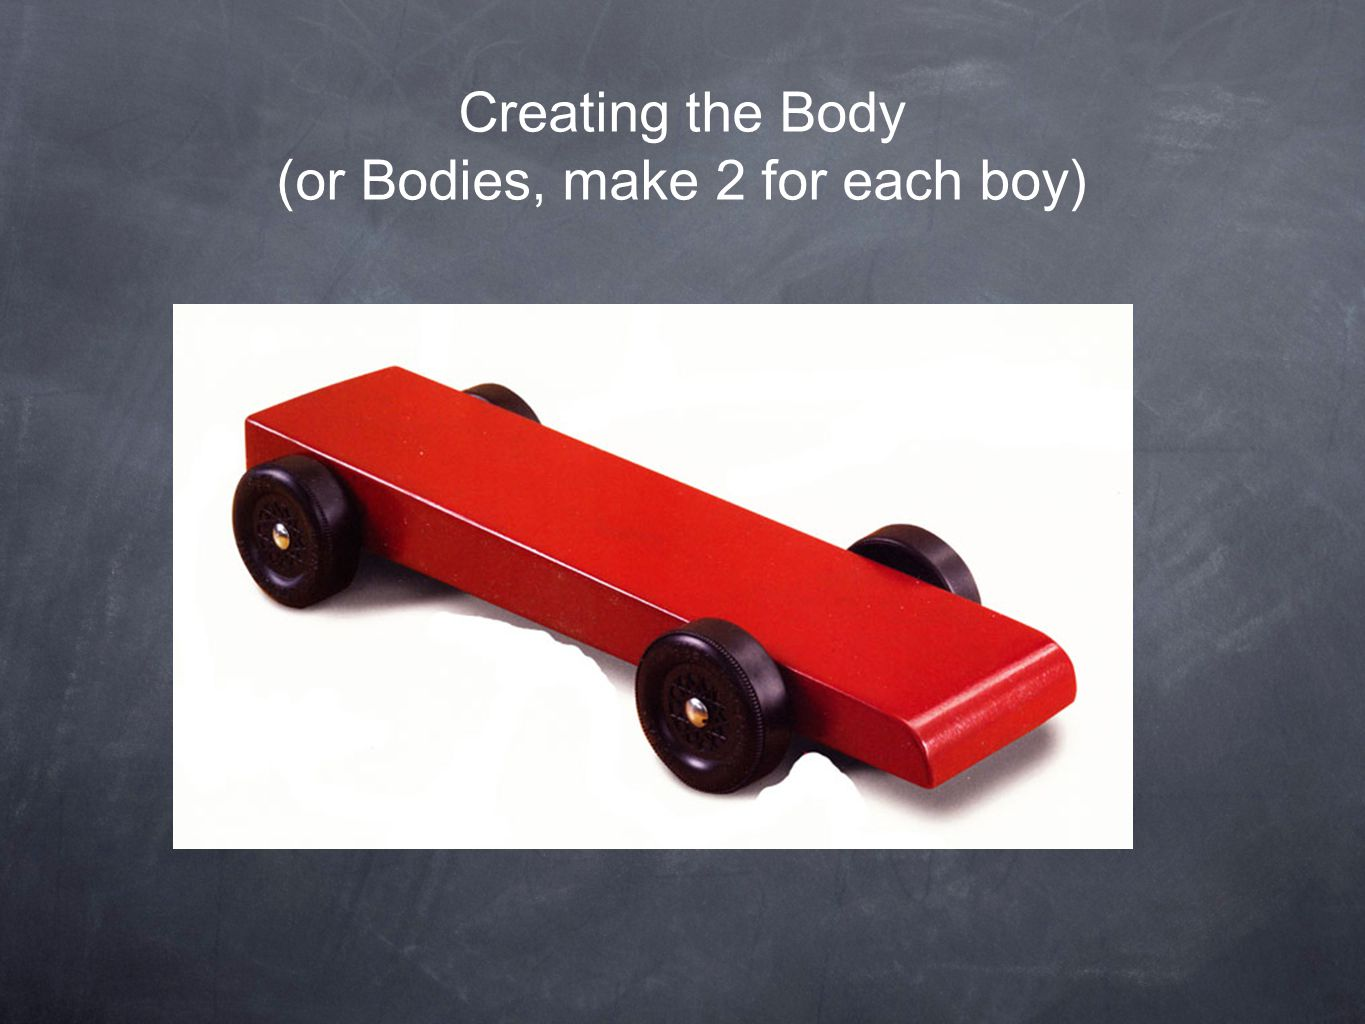 Creating the Body (or Bodies, make 2 for each boy)